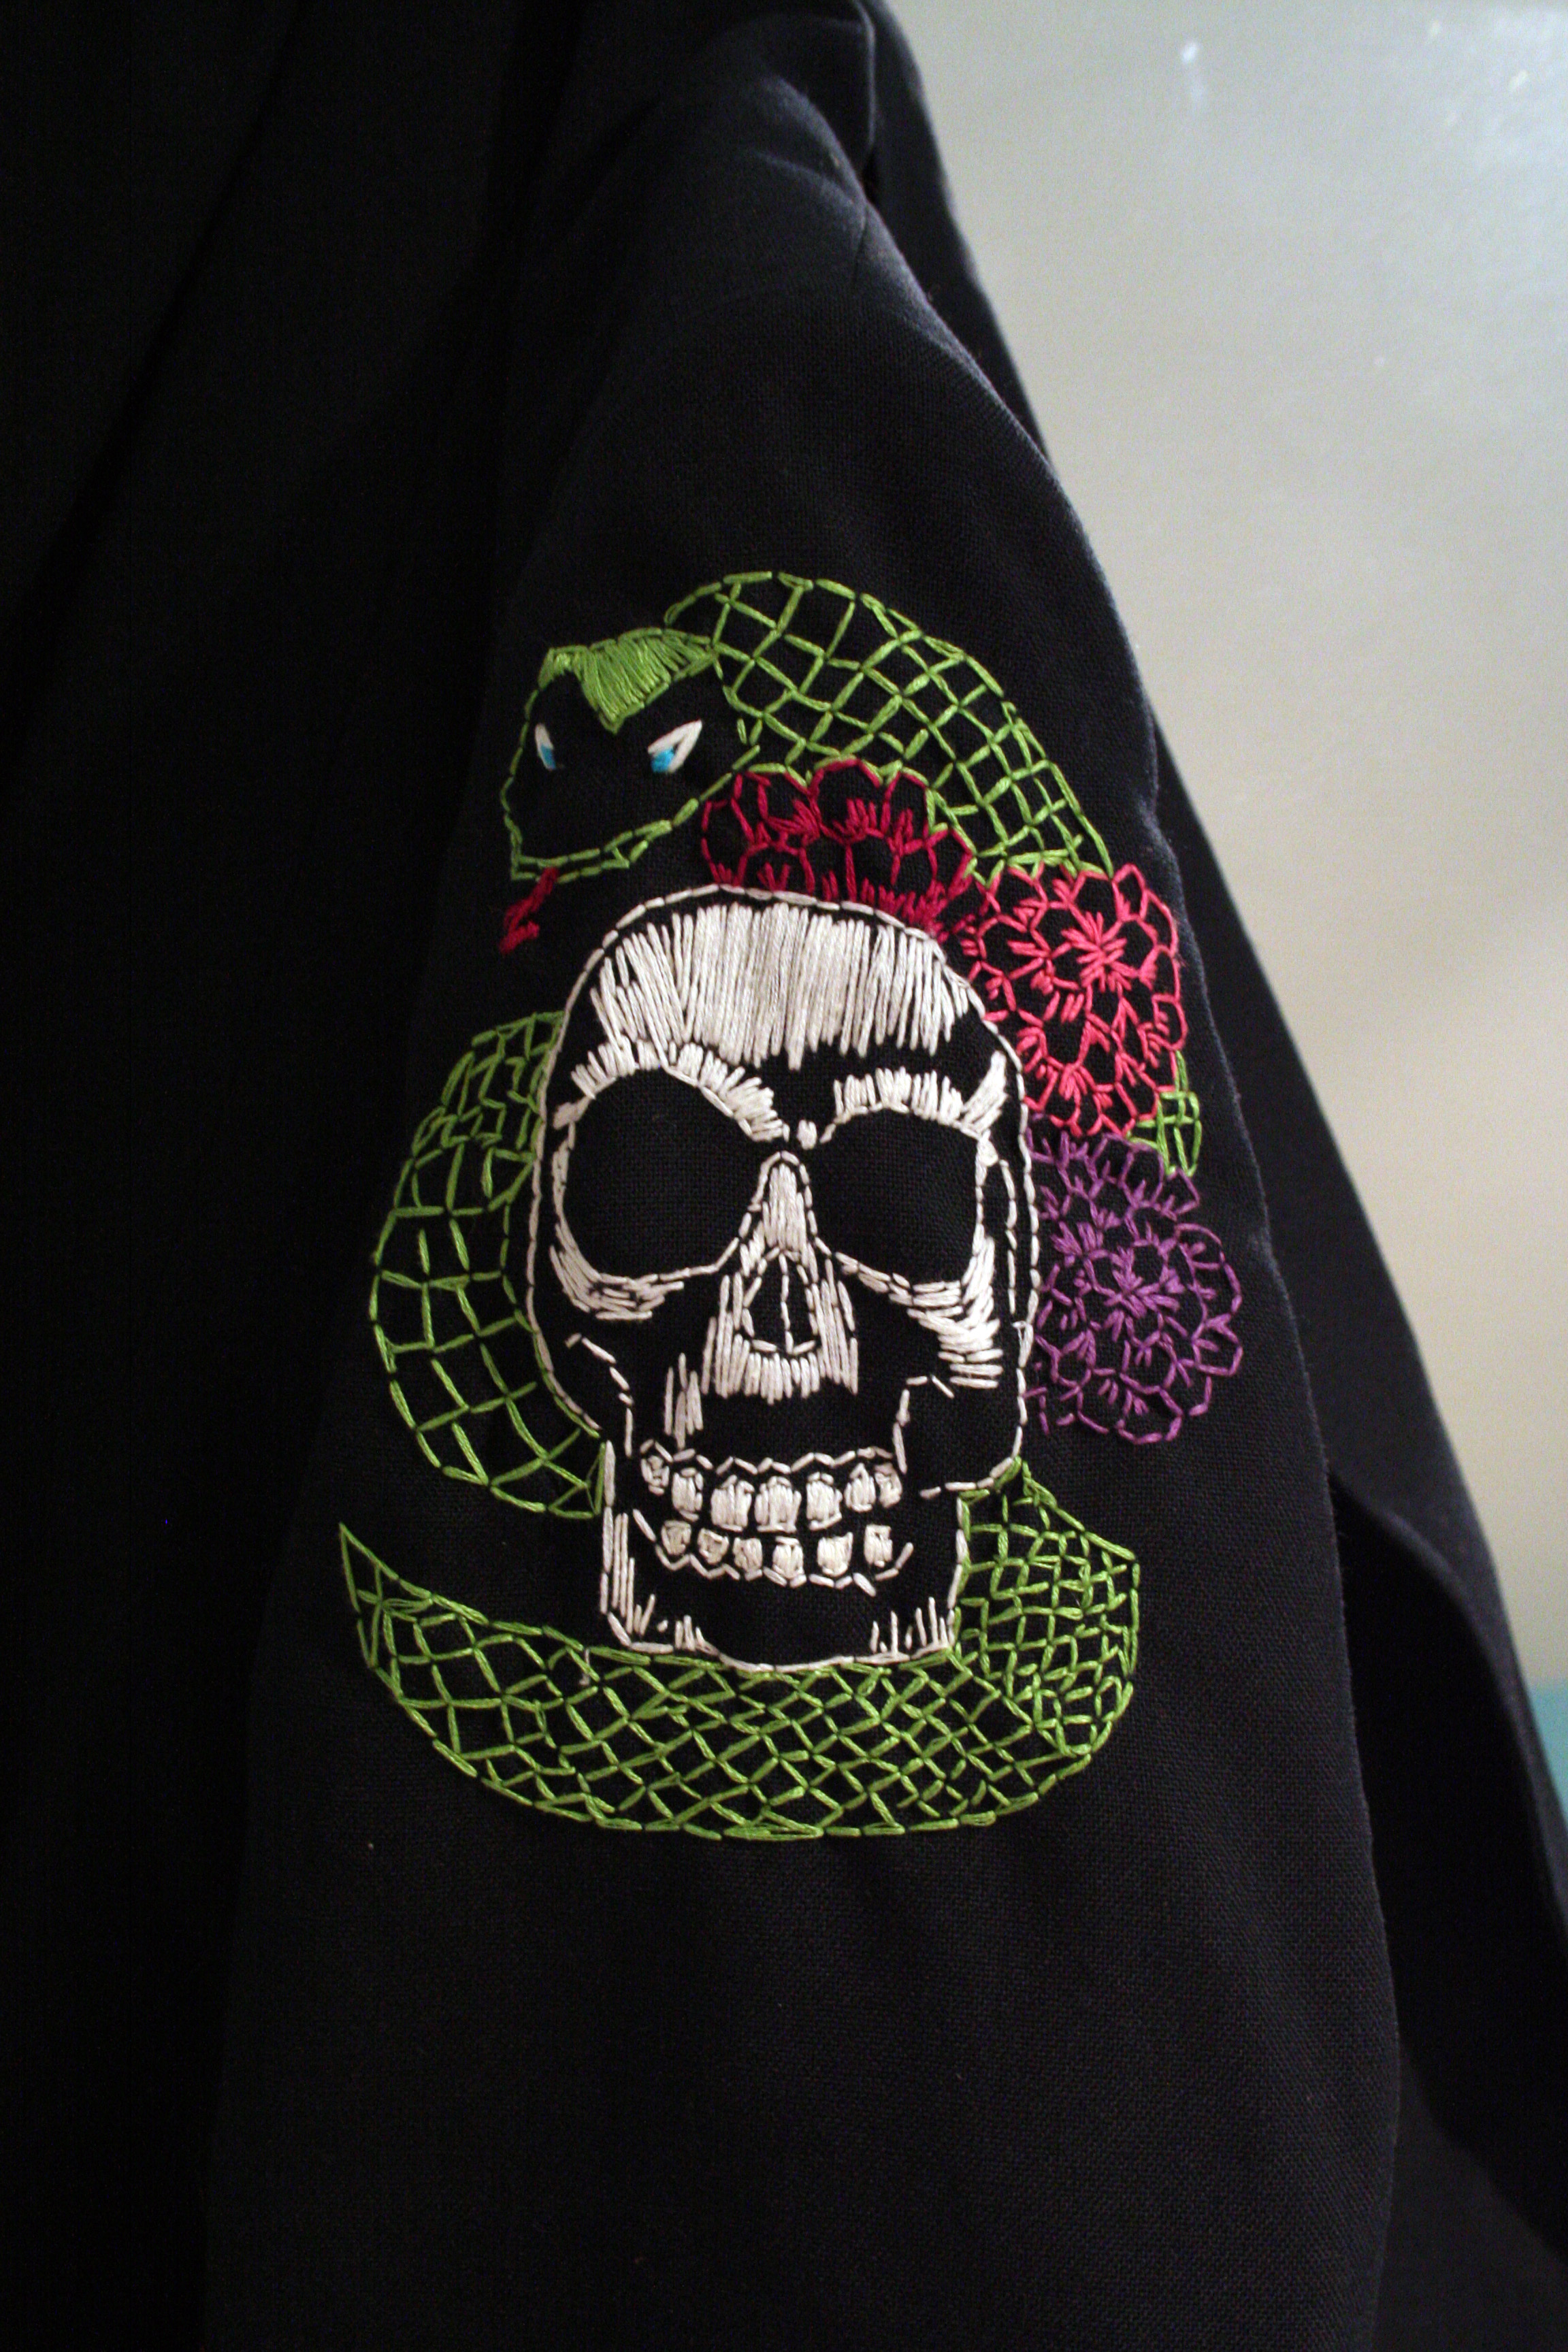 Another of her many talents – embroidery on a jacket.